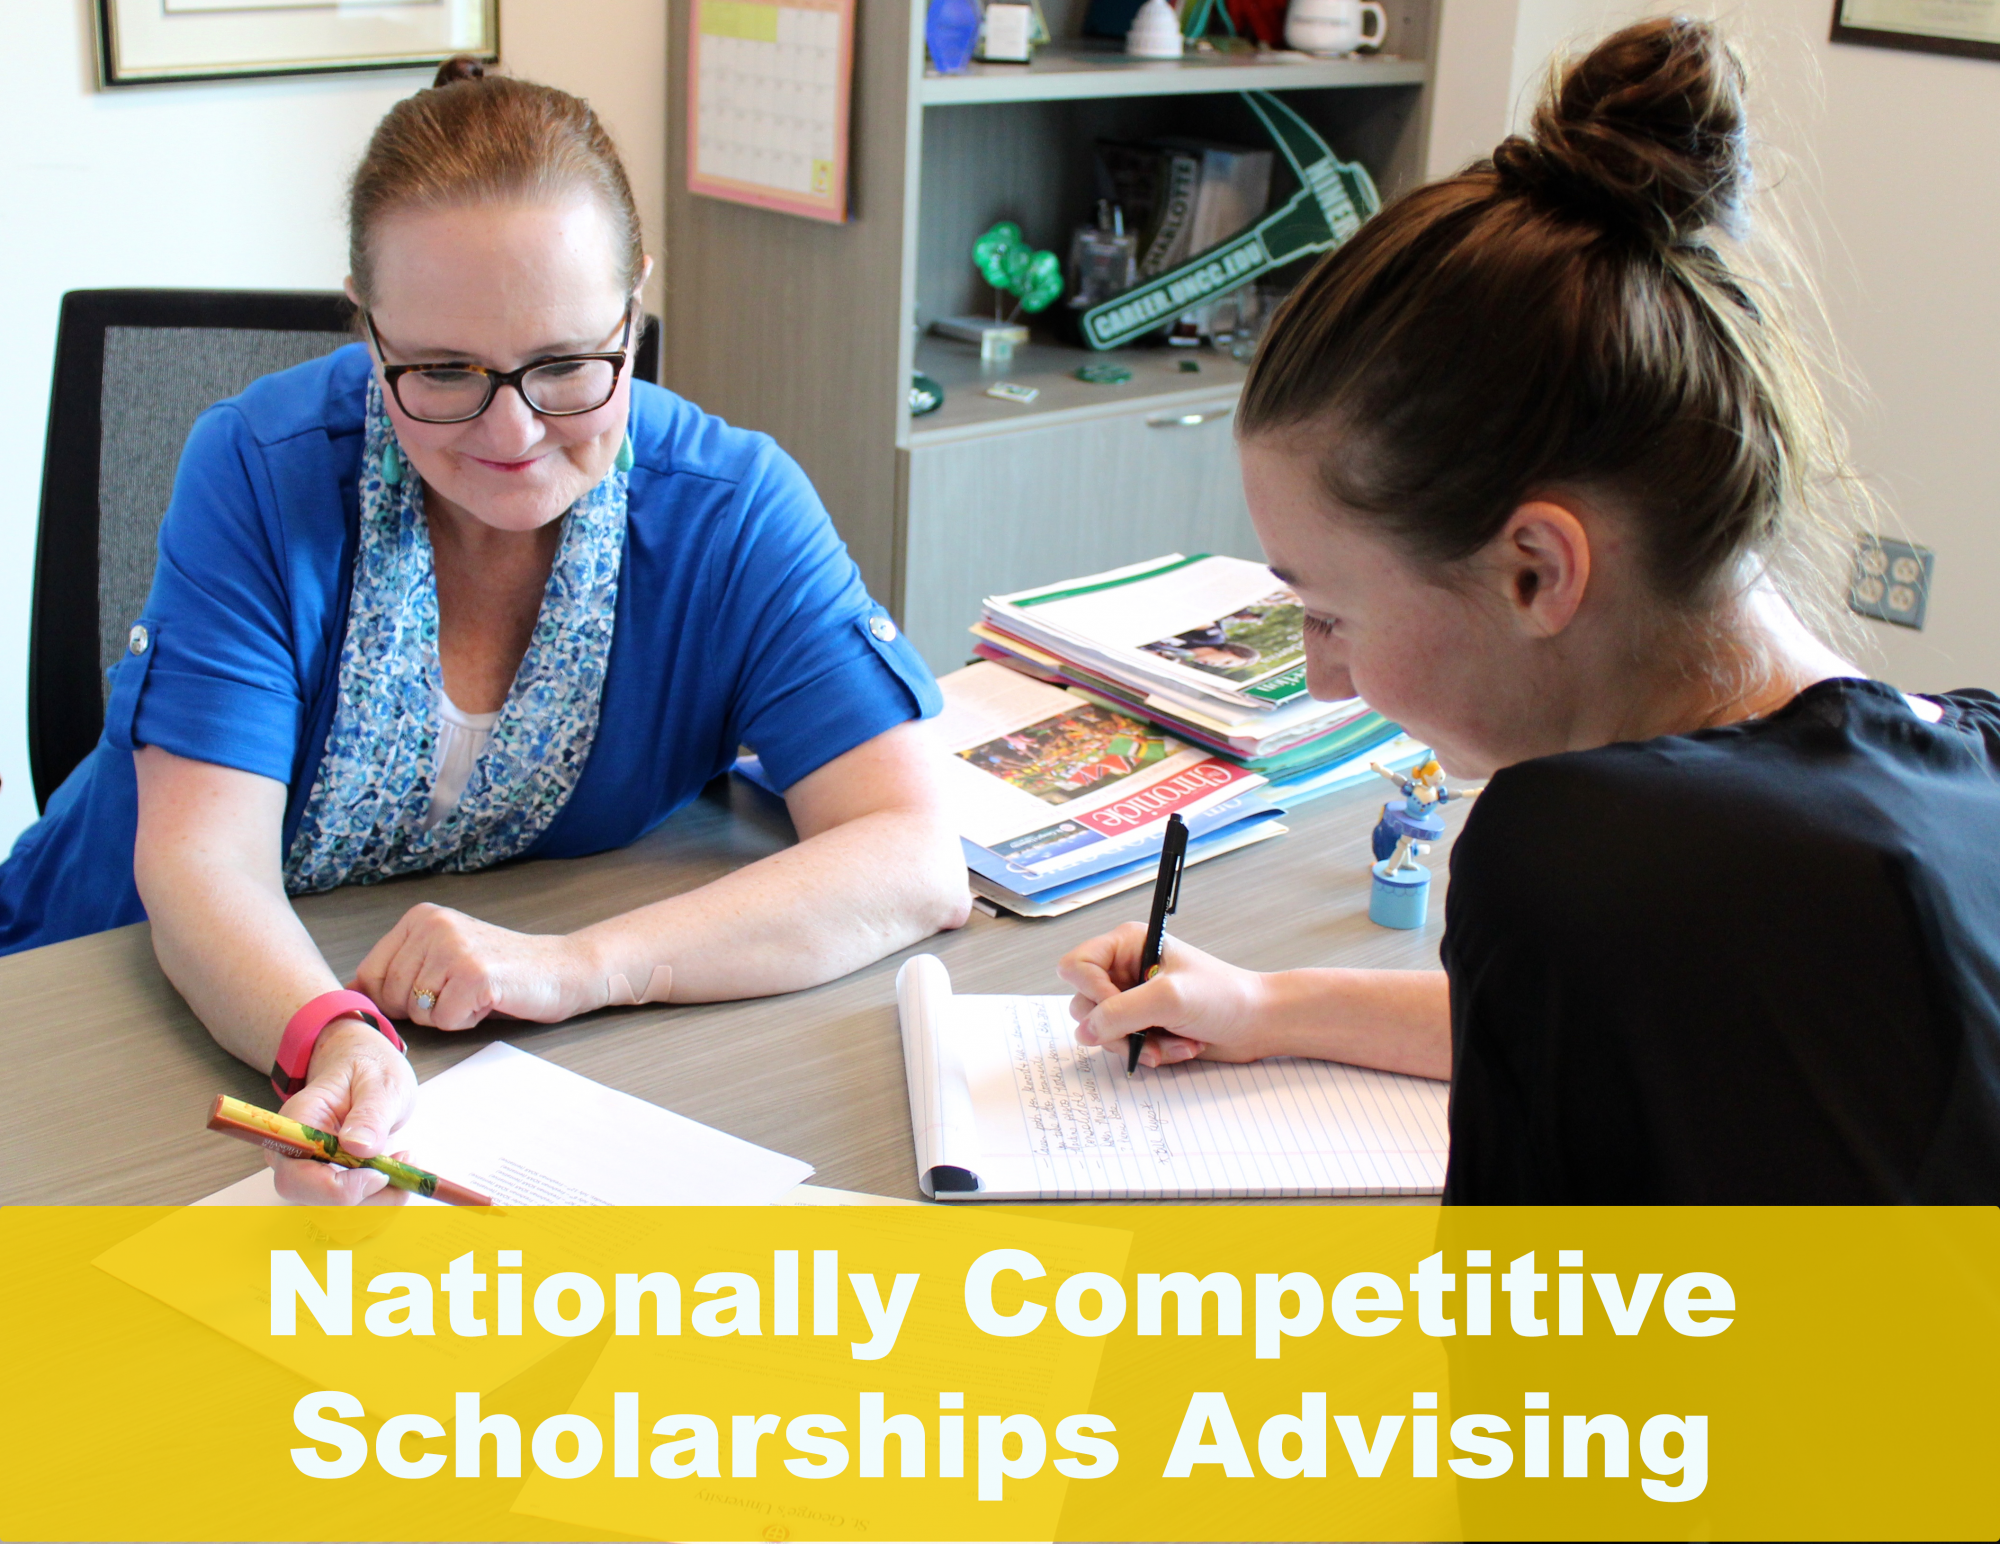 Nationally Competitive Scholarships Advising